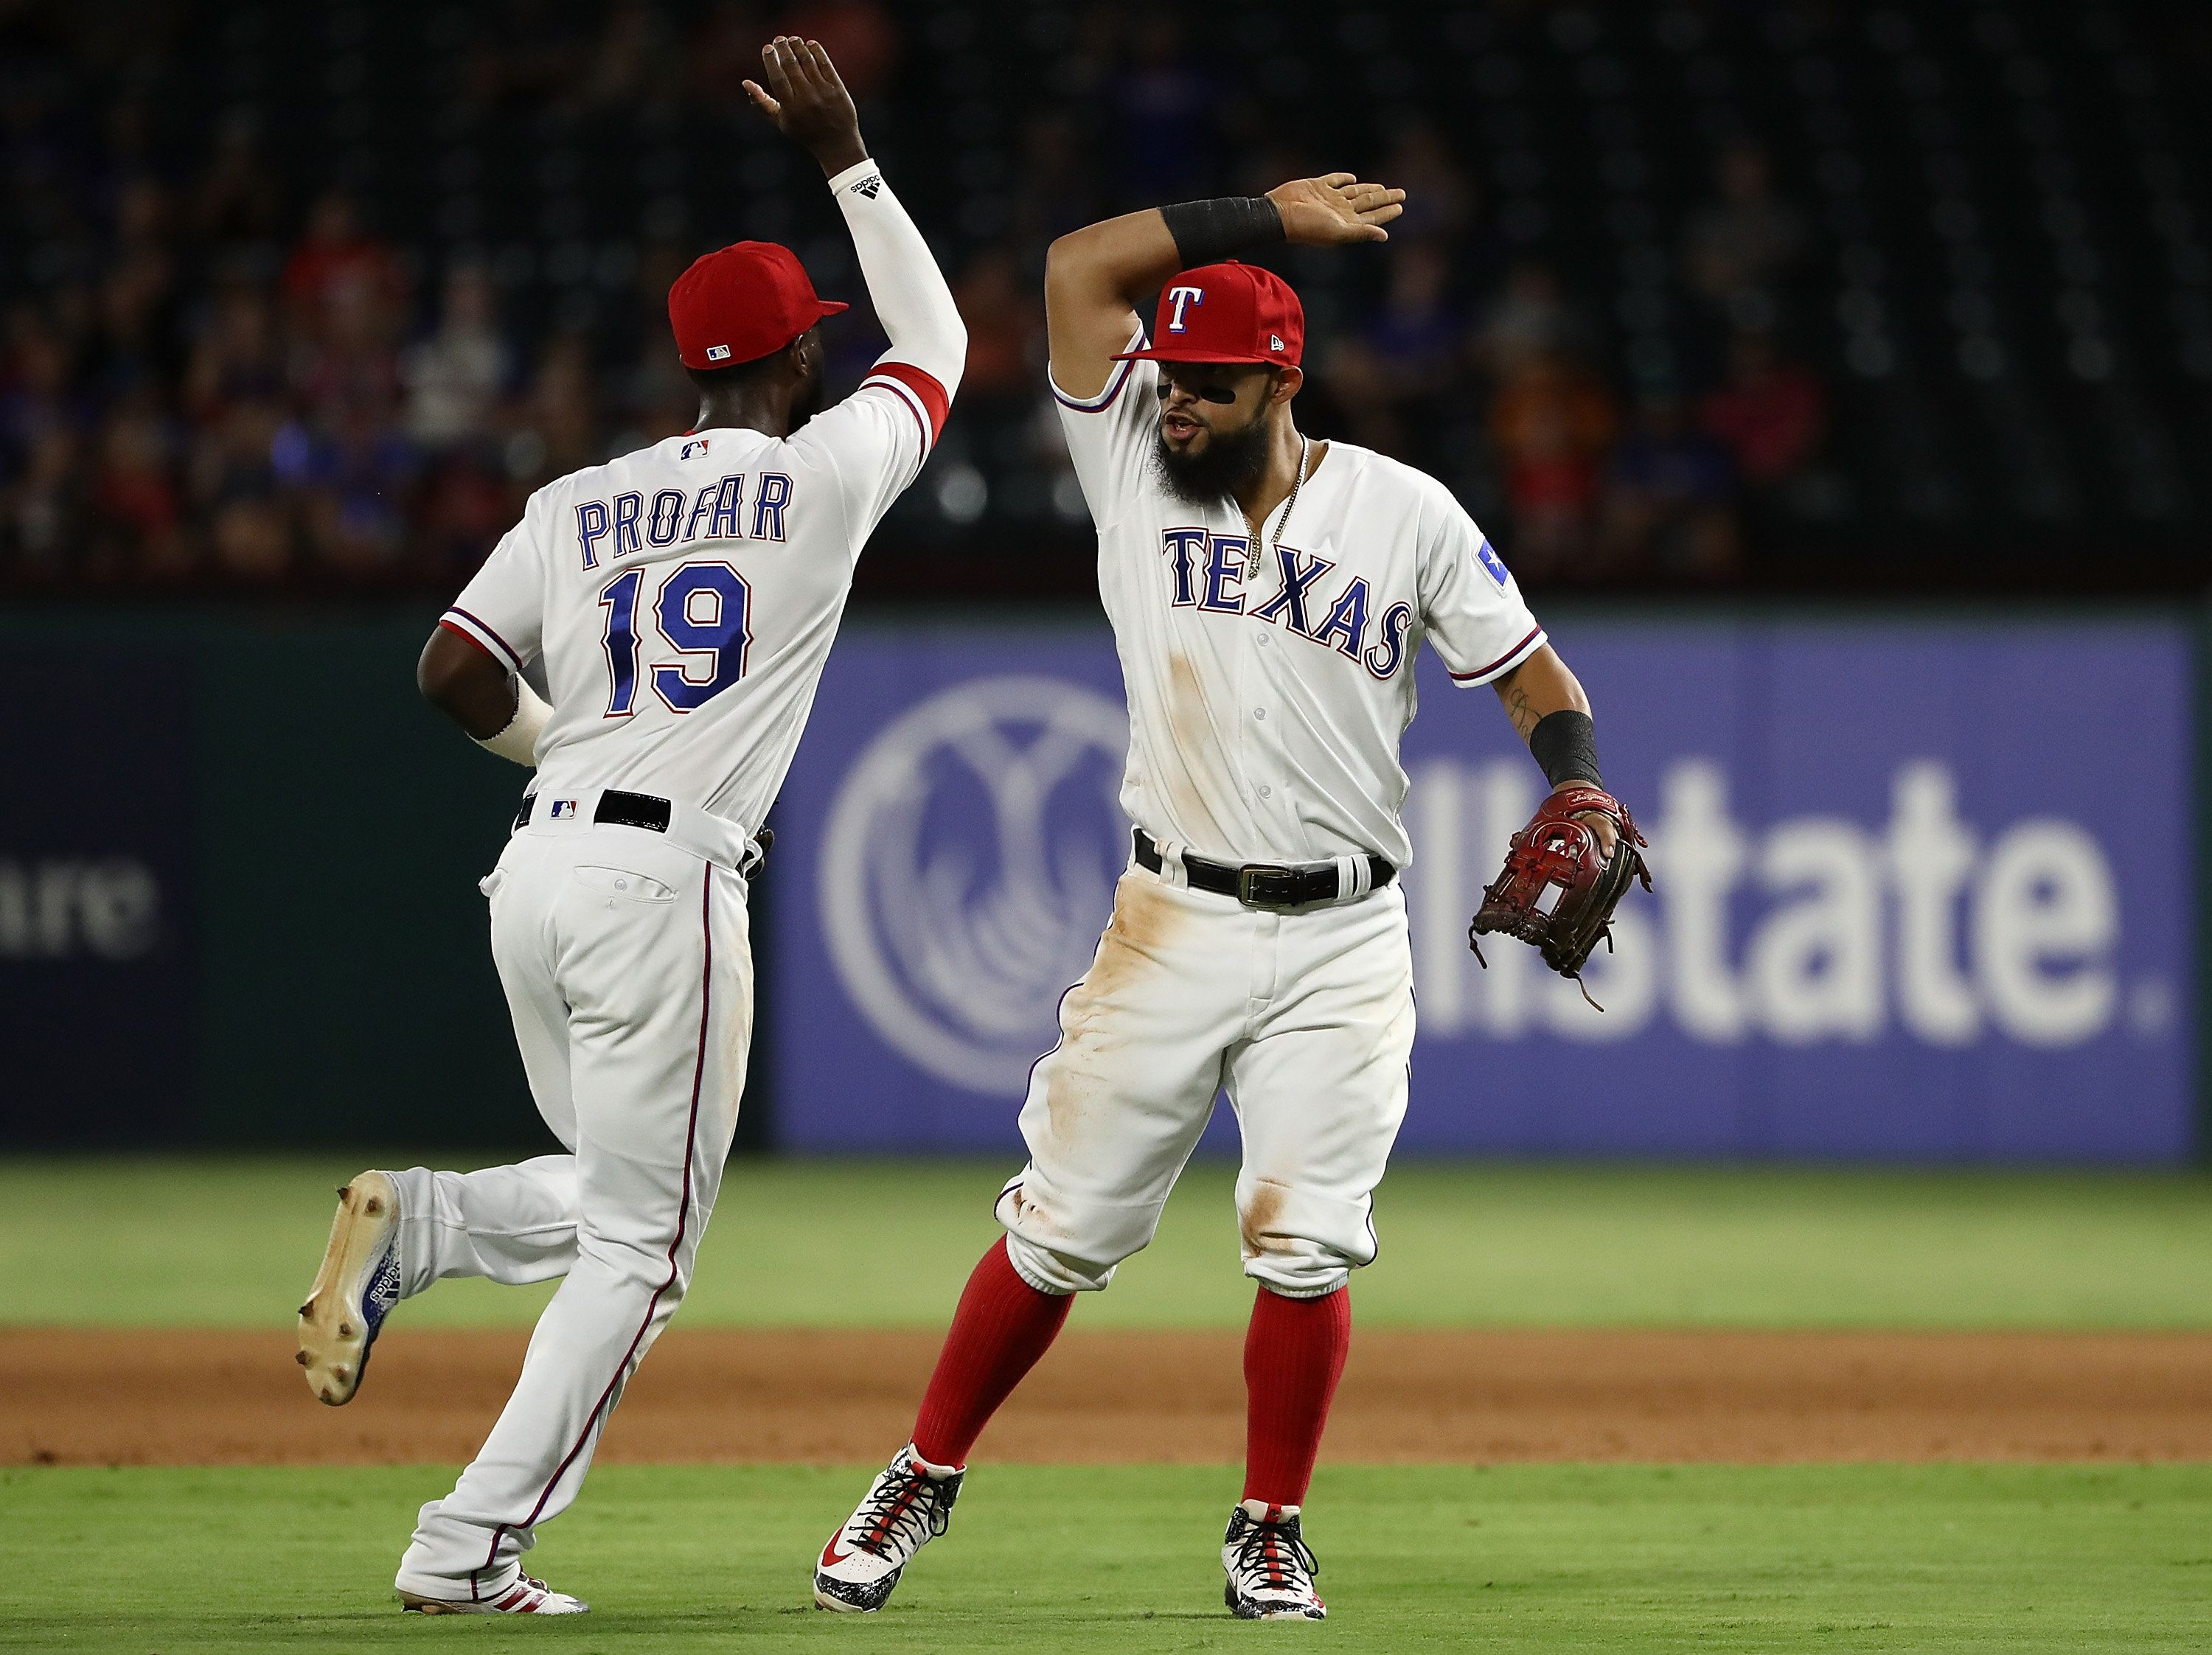 ARLINGTON, TX - AUGUST 16:  (L-R) Jurickson Profar #19 and Rougned Odor #12 of the Texas Rangers celebrate a triple play against the Los Angeles Angels in the fourth inning at Globe Life Park in Arlington on August 16, 2018 in Arlington, Texas.  (Photo by Ronald Martinez/Getty Images)